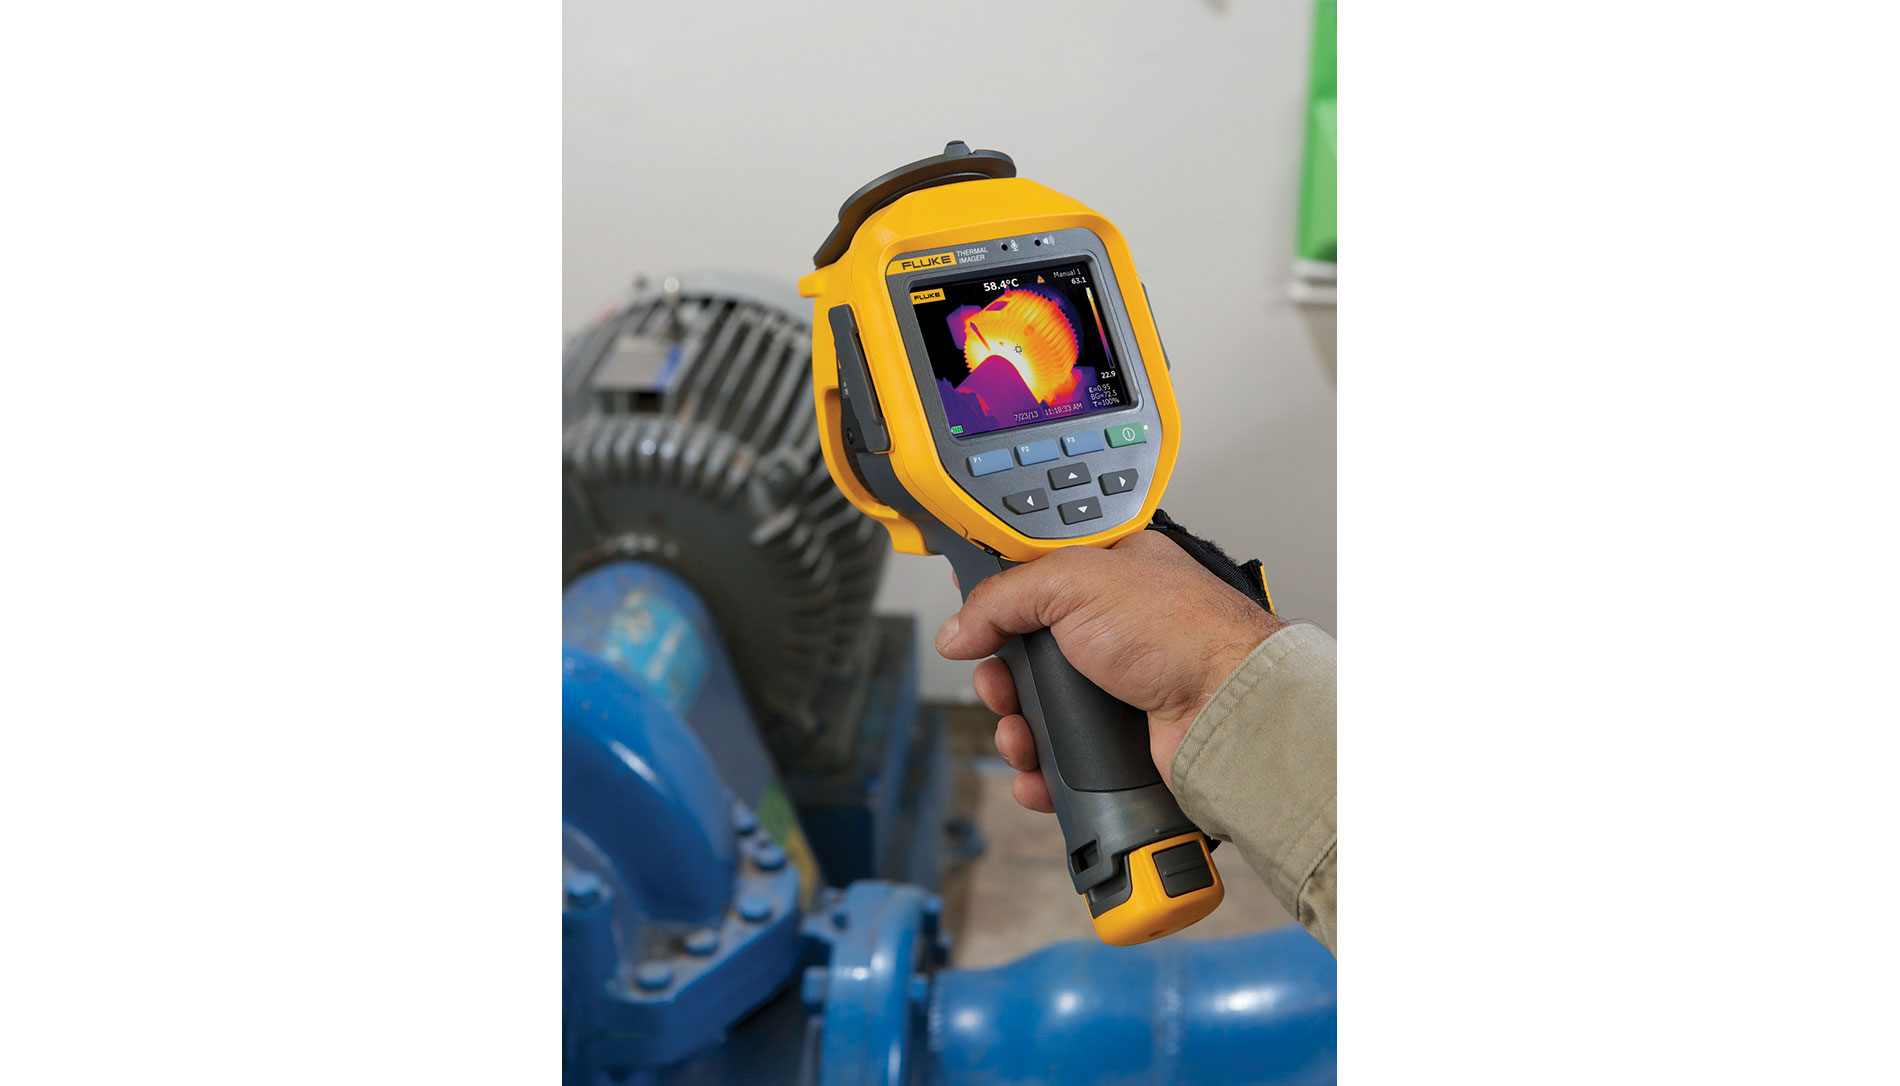 Fluke IR camera has an intuitive touchscreen interface.